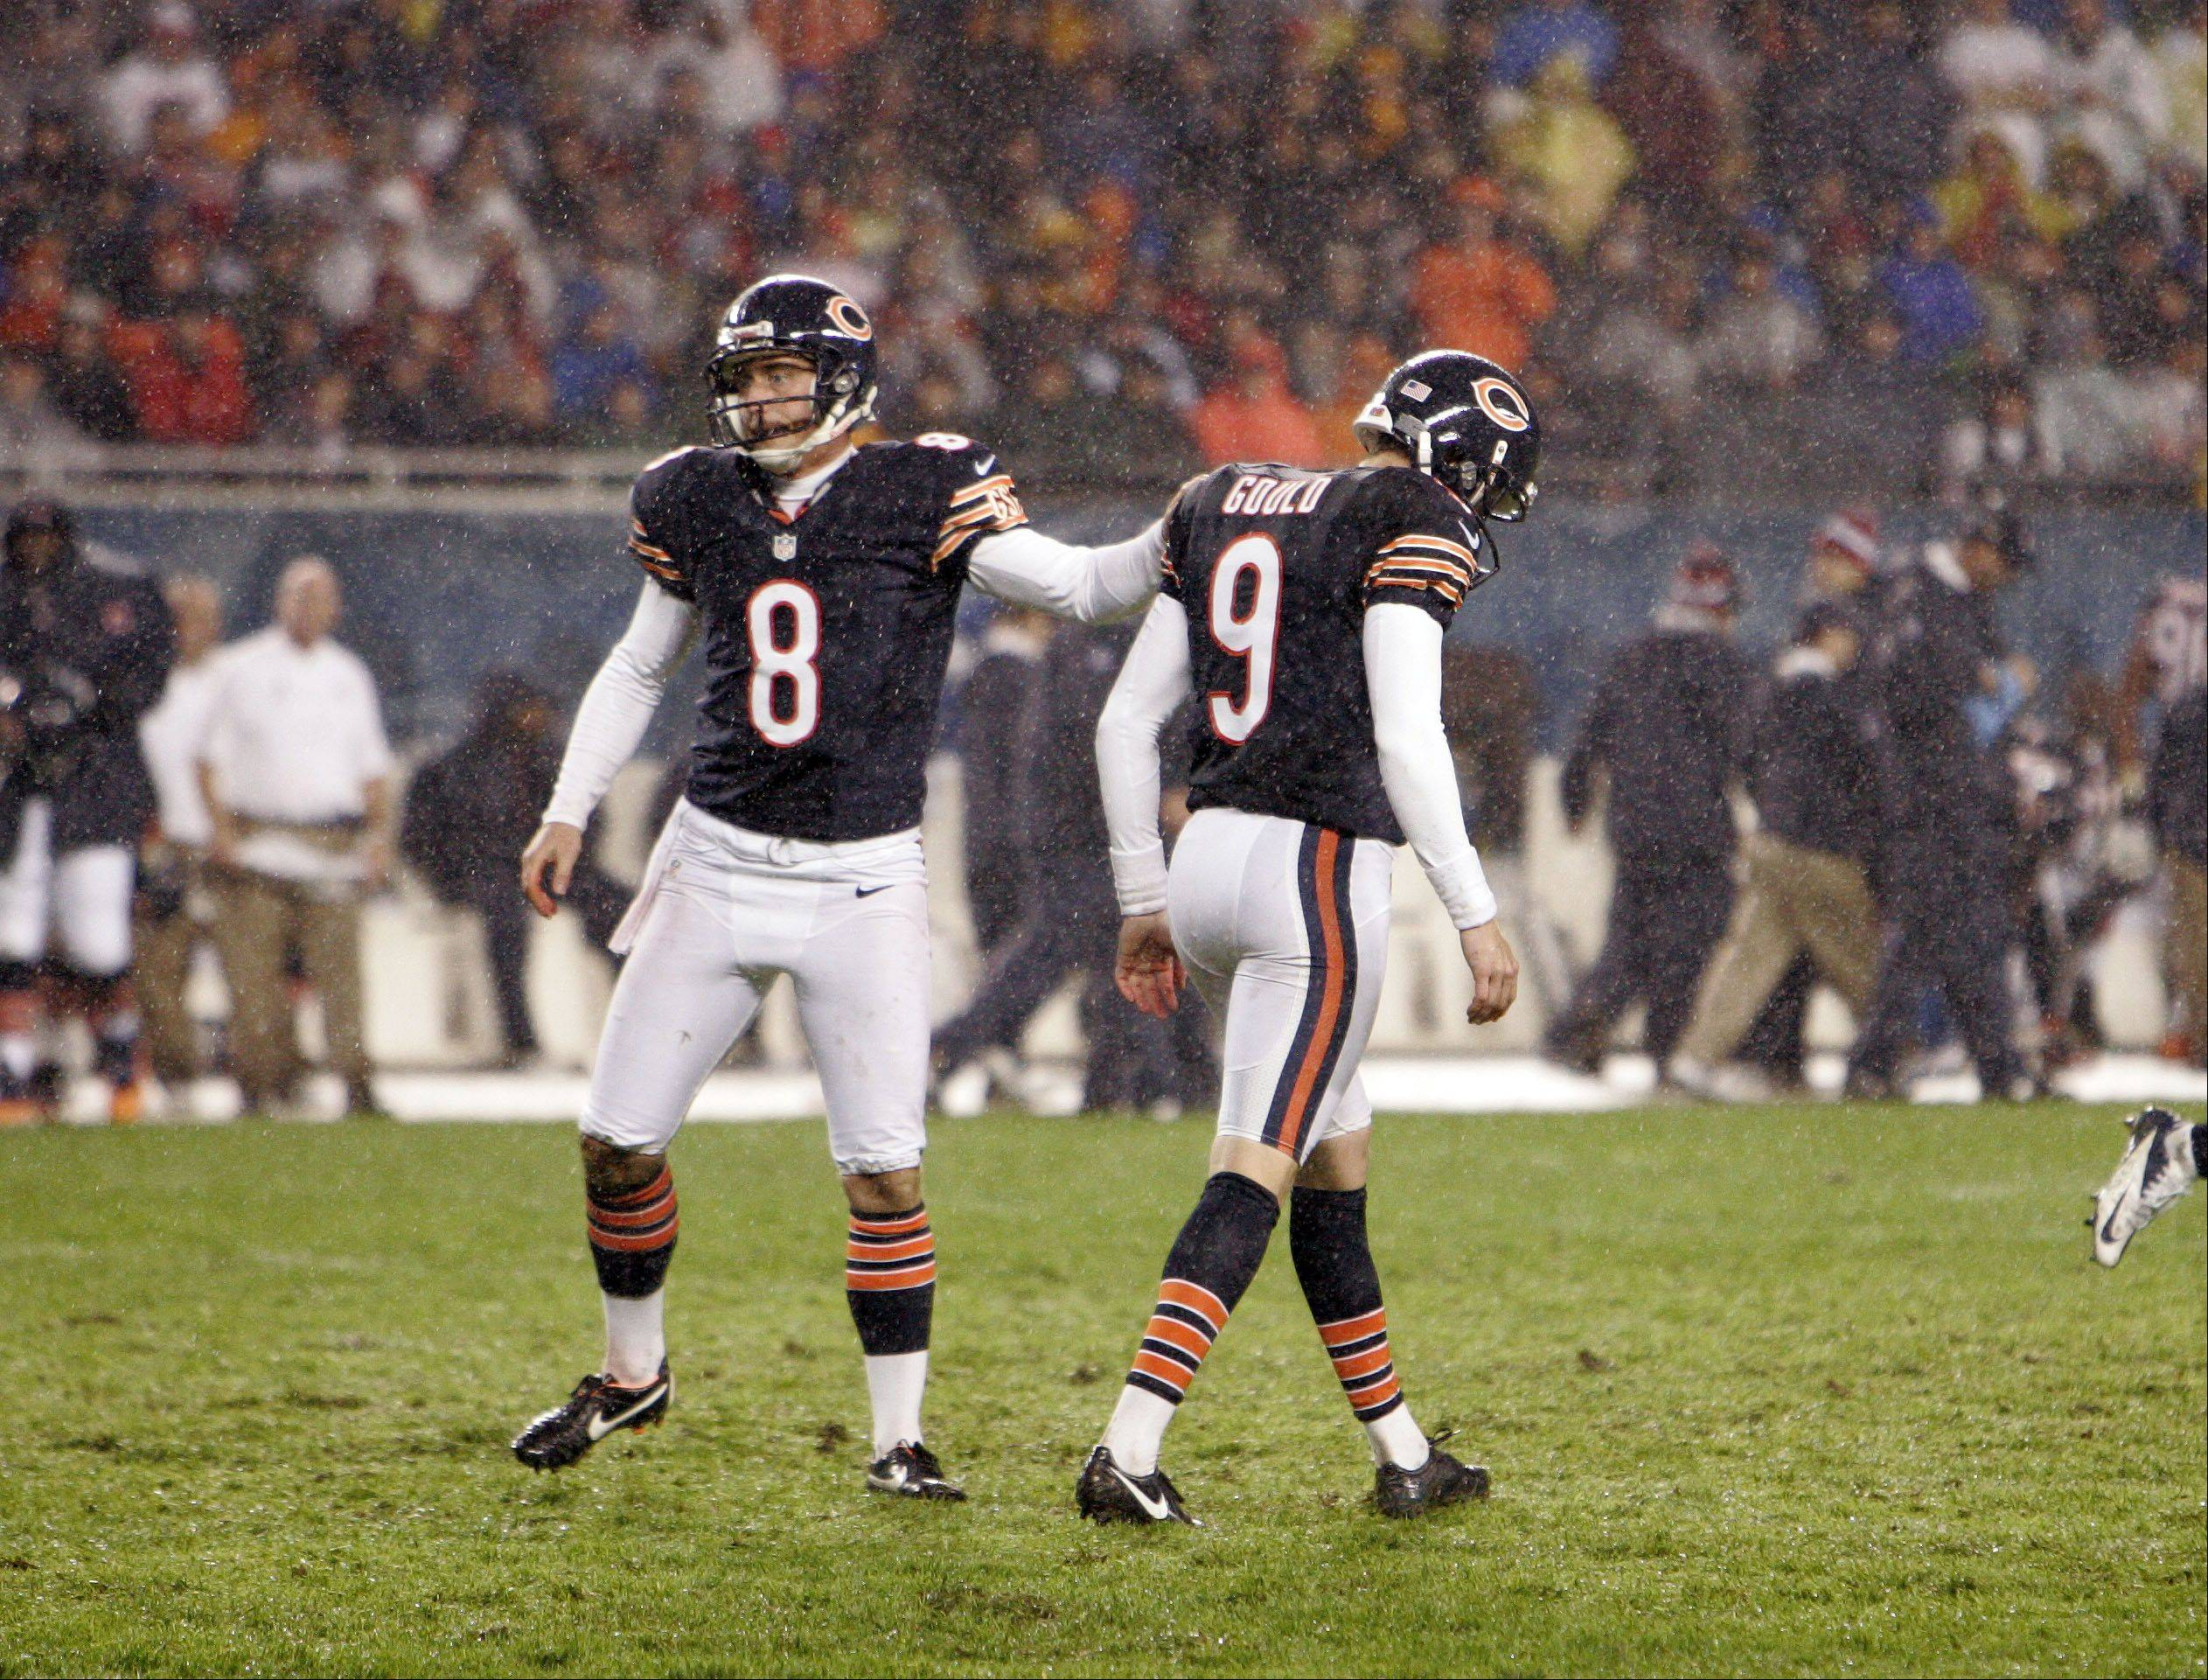 Chicago Bears punter Adam Podlesh (8) consoles Robbie Gould (9) after a missed field goal attempt during the game.